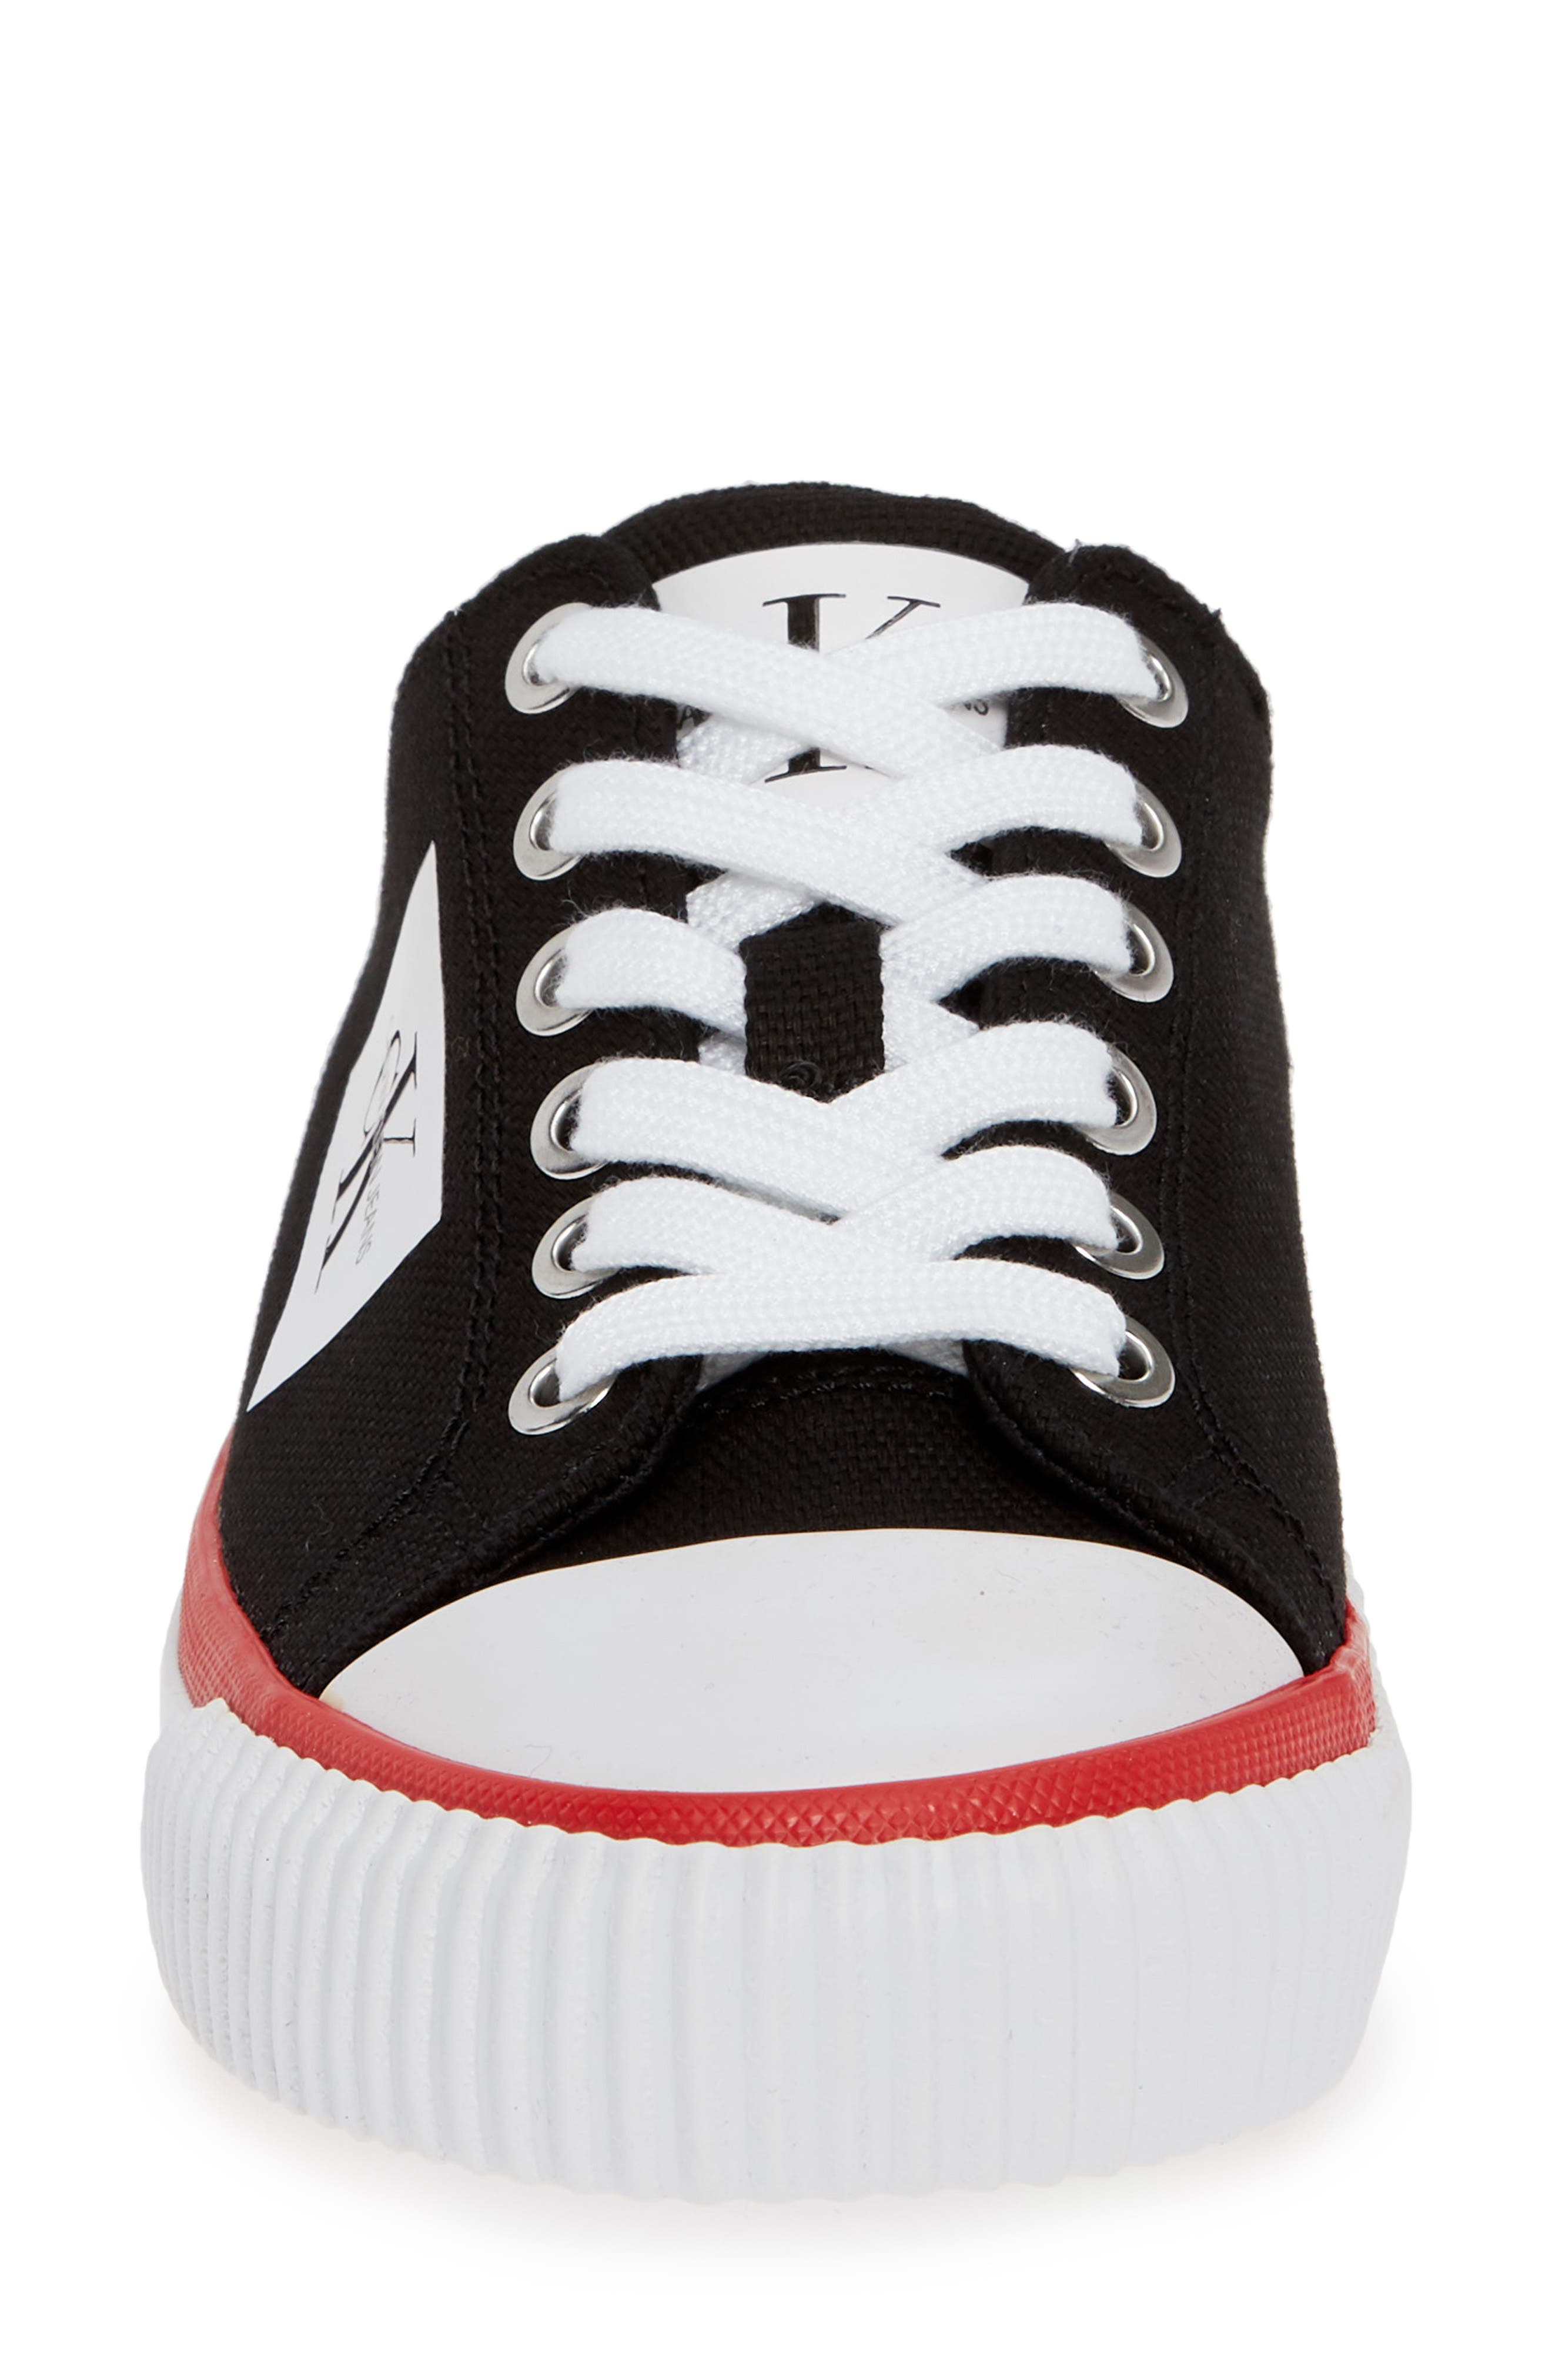 Ivory Lace-Up Sneaker,                             Alternate thumbnail 4, color,                             001